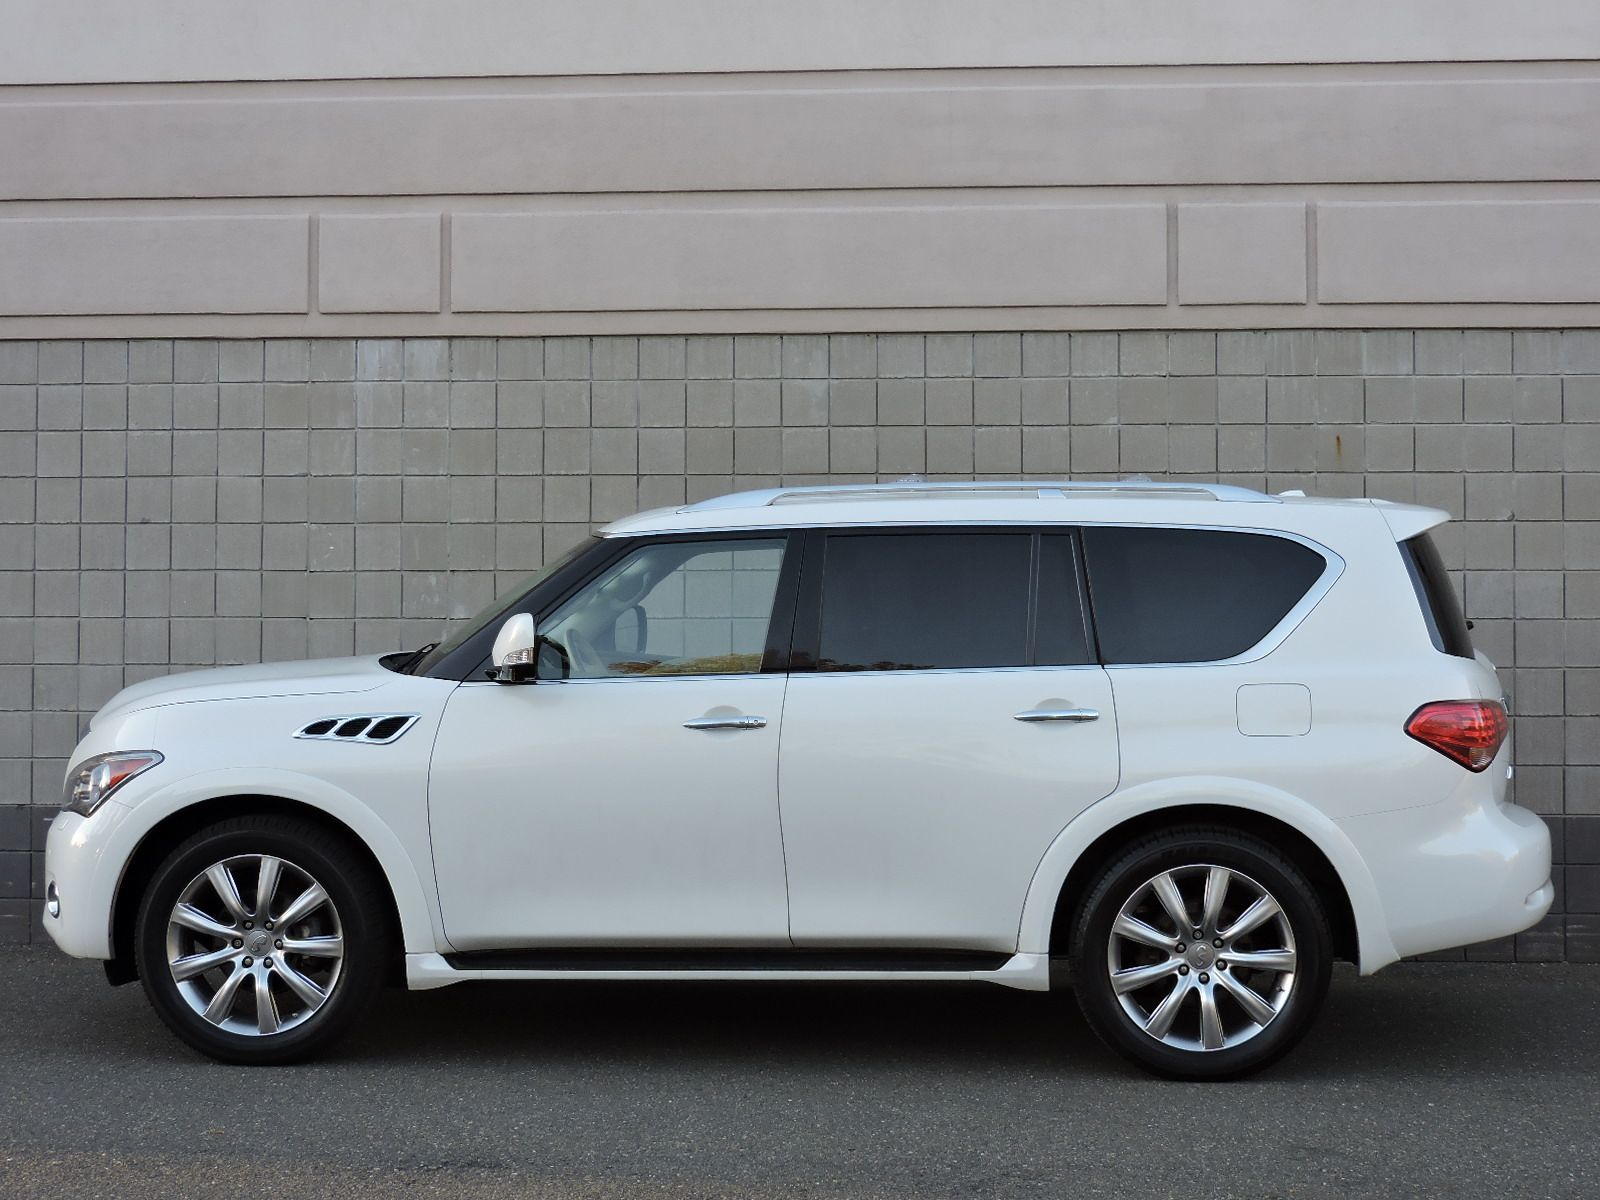 Used 2011 infiniti qx56 8 passenger at auto house usa saugus 2011 infiniti qx56 all wheel drive navigation dvd video entertainment vanachro Choice Image